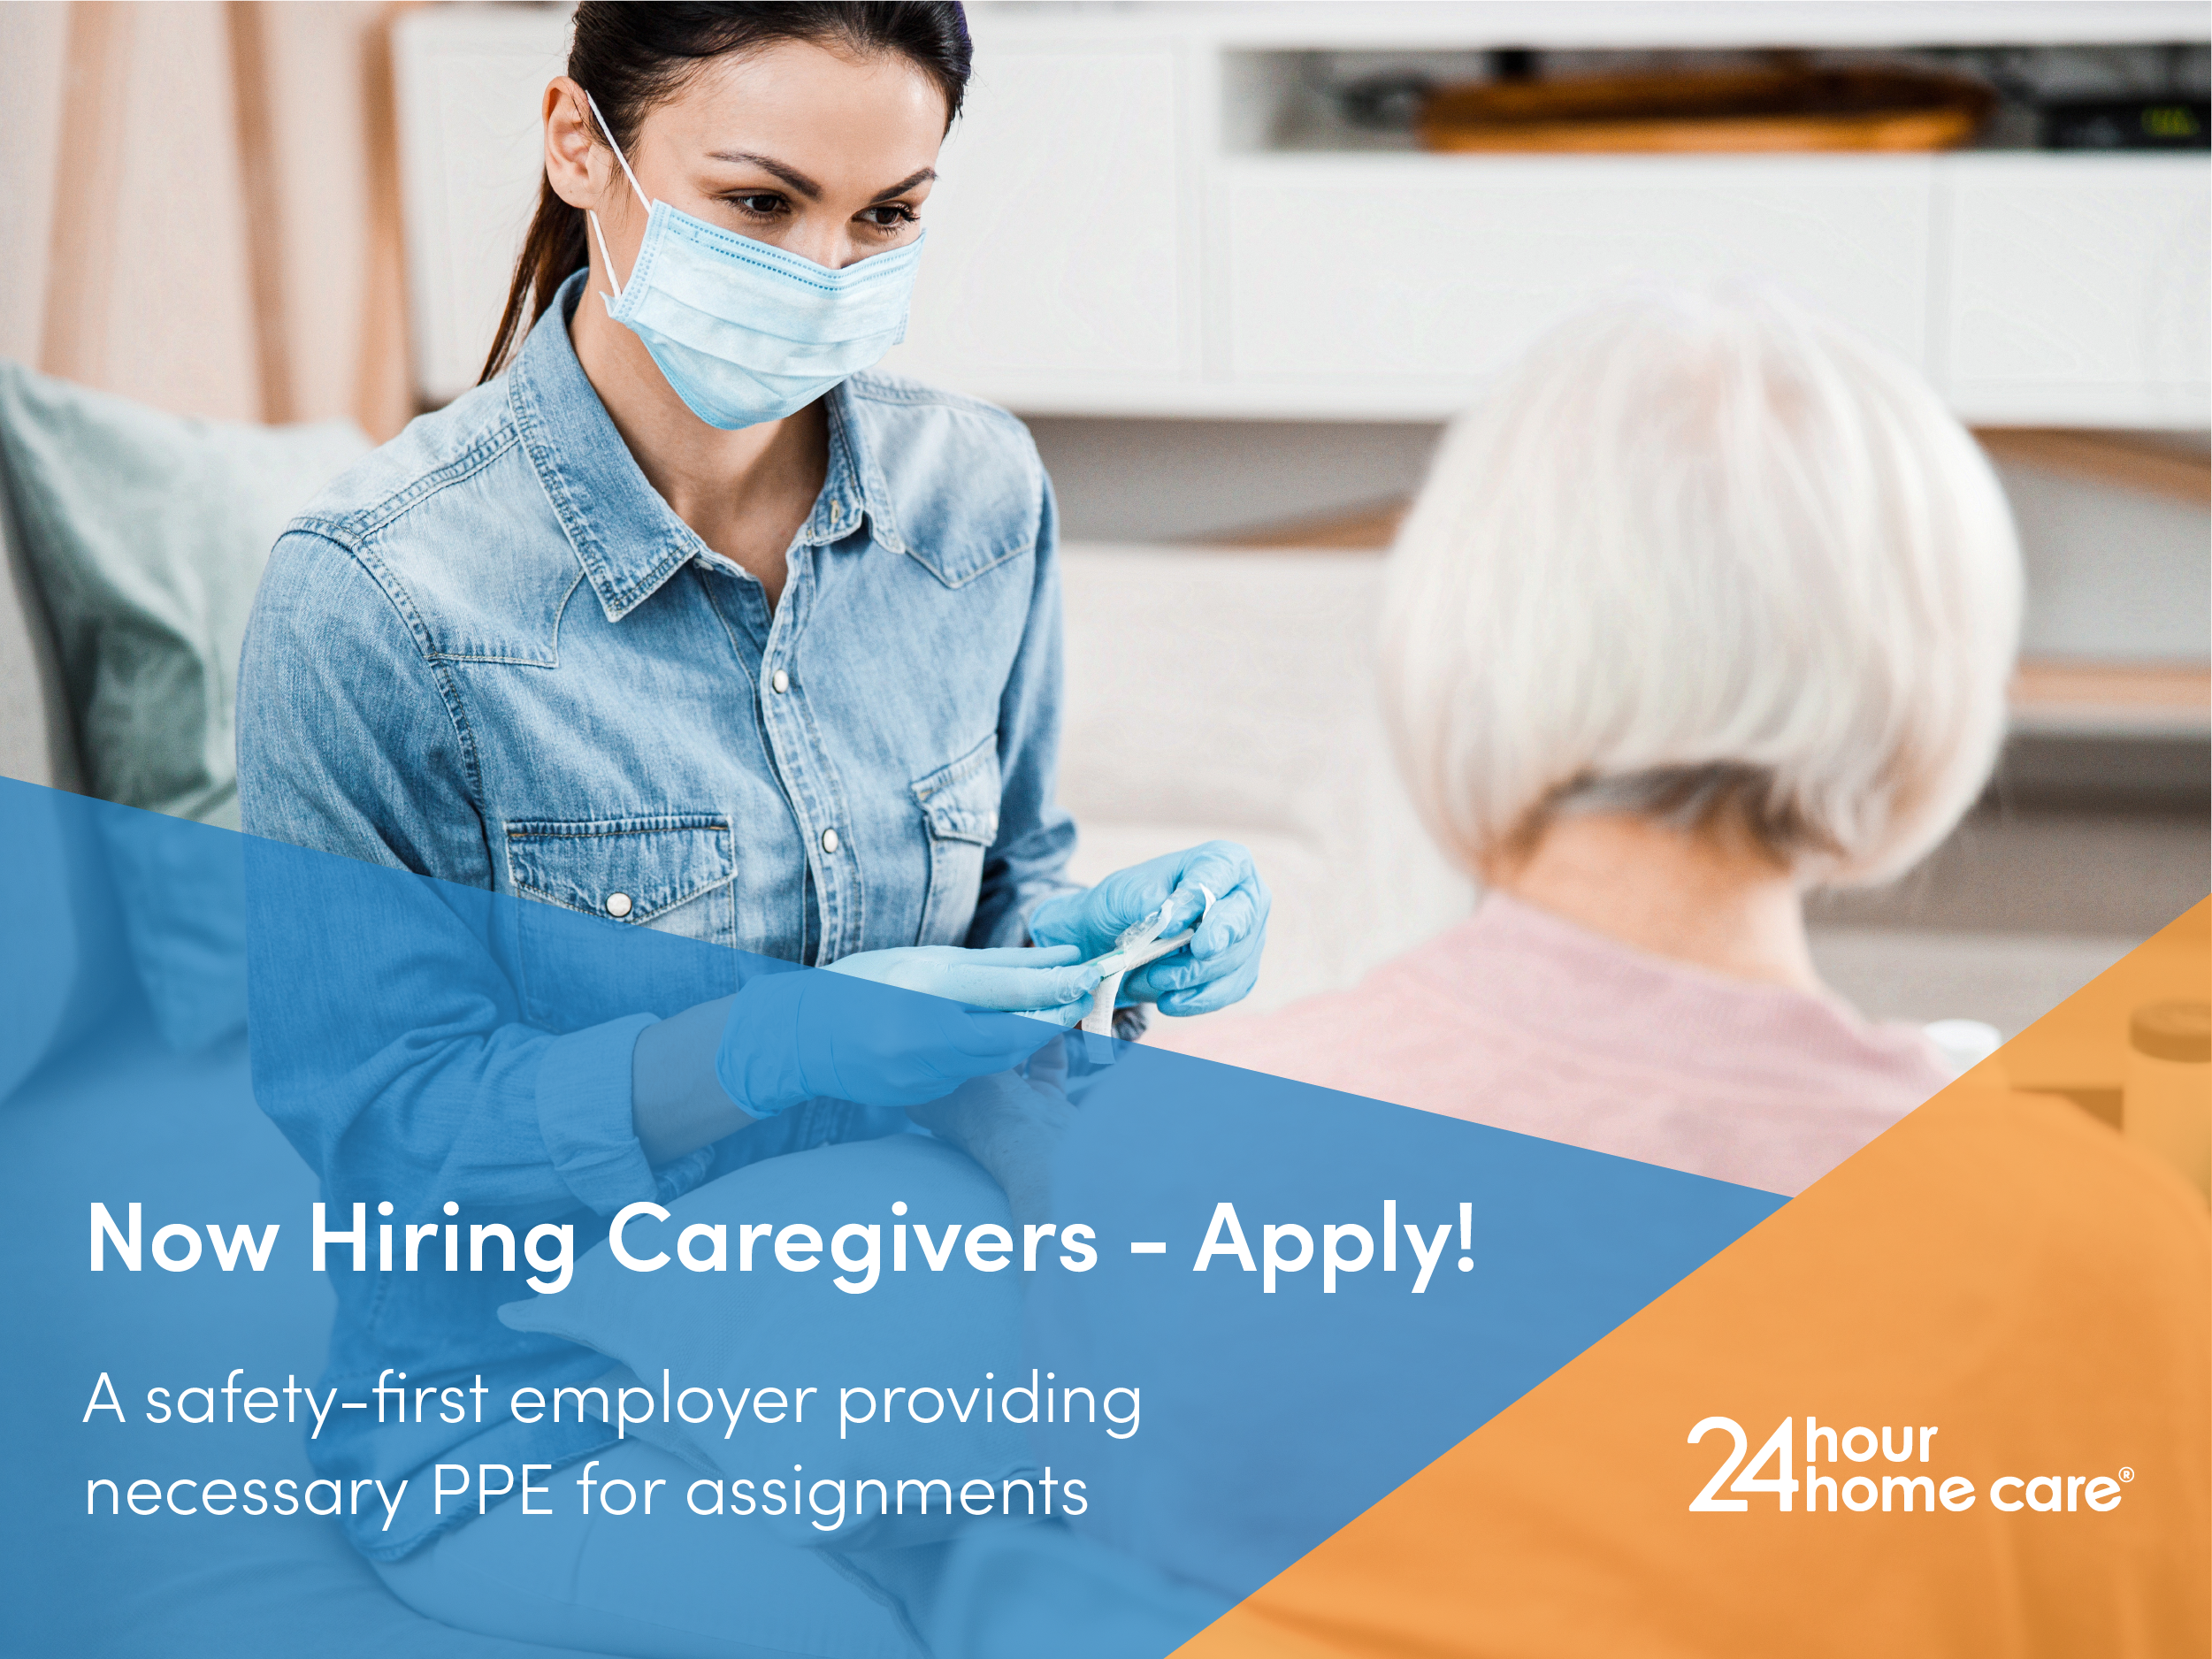 Hiring Caregivers